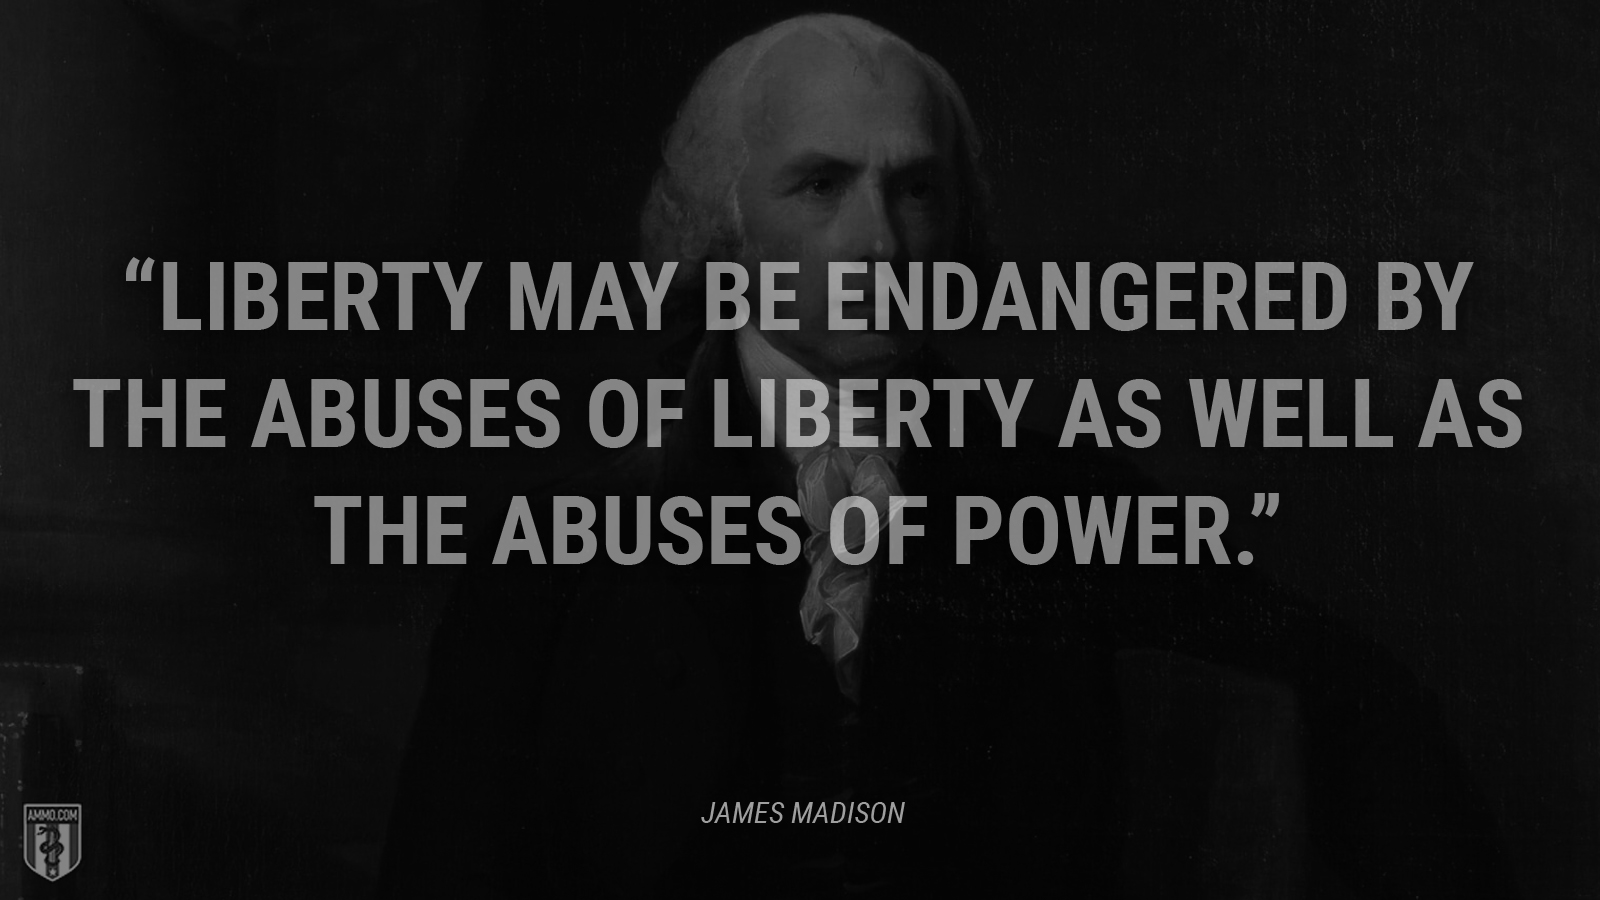 """Liberty may be endangered by the abuses of liberty as well as the abuses of power."" - James Madison"